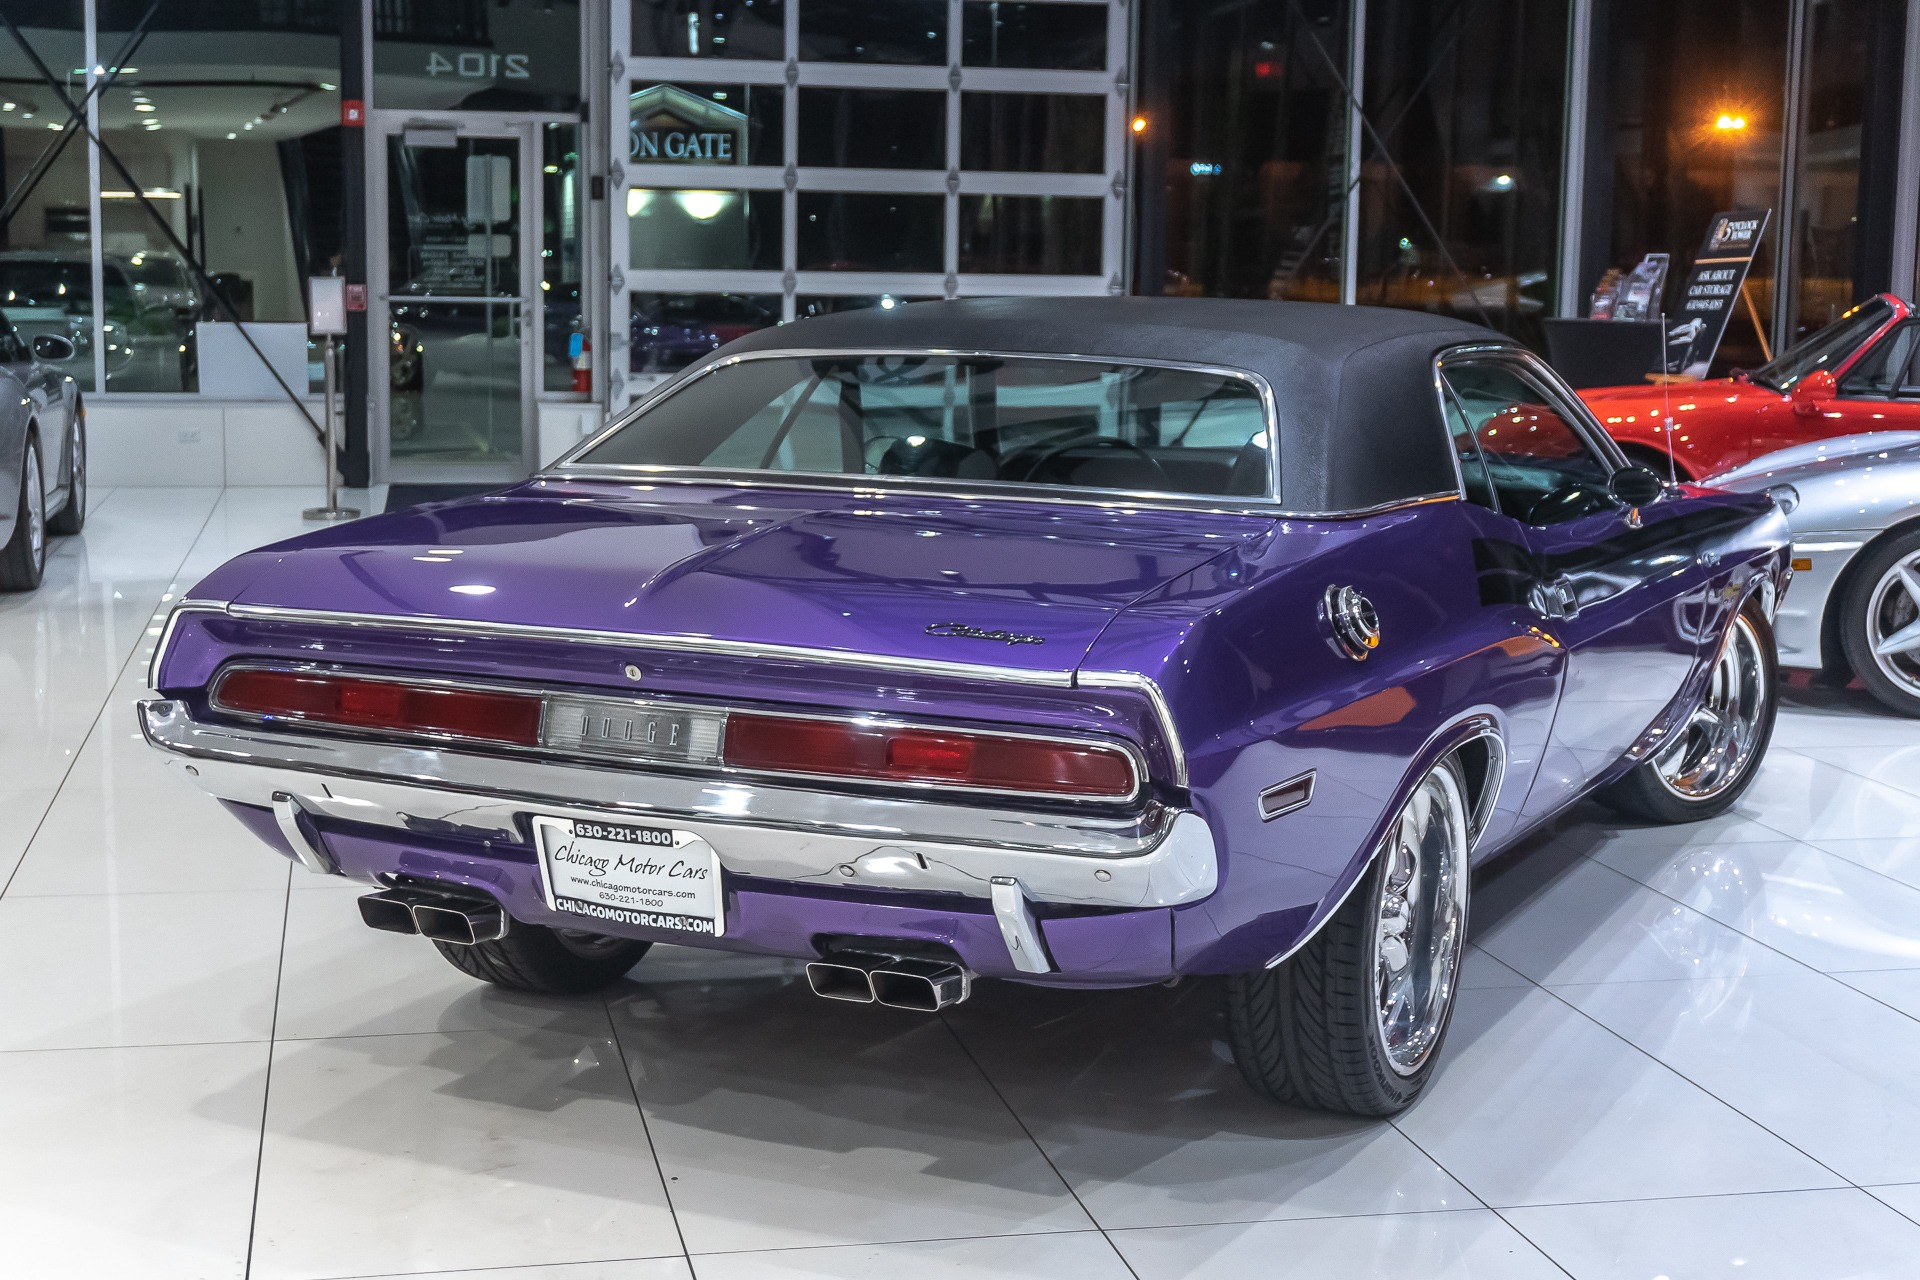 Used-1970-Dodge-Challenger-360CI-FI-TECH-FUEL-INJECTED-RESTORED